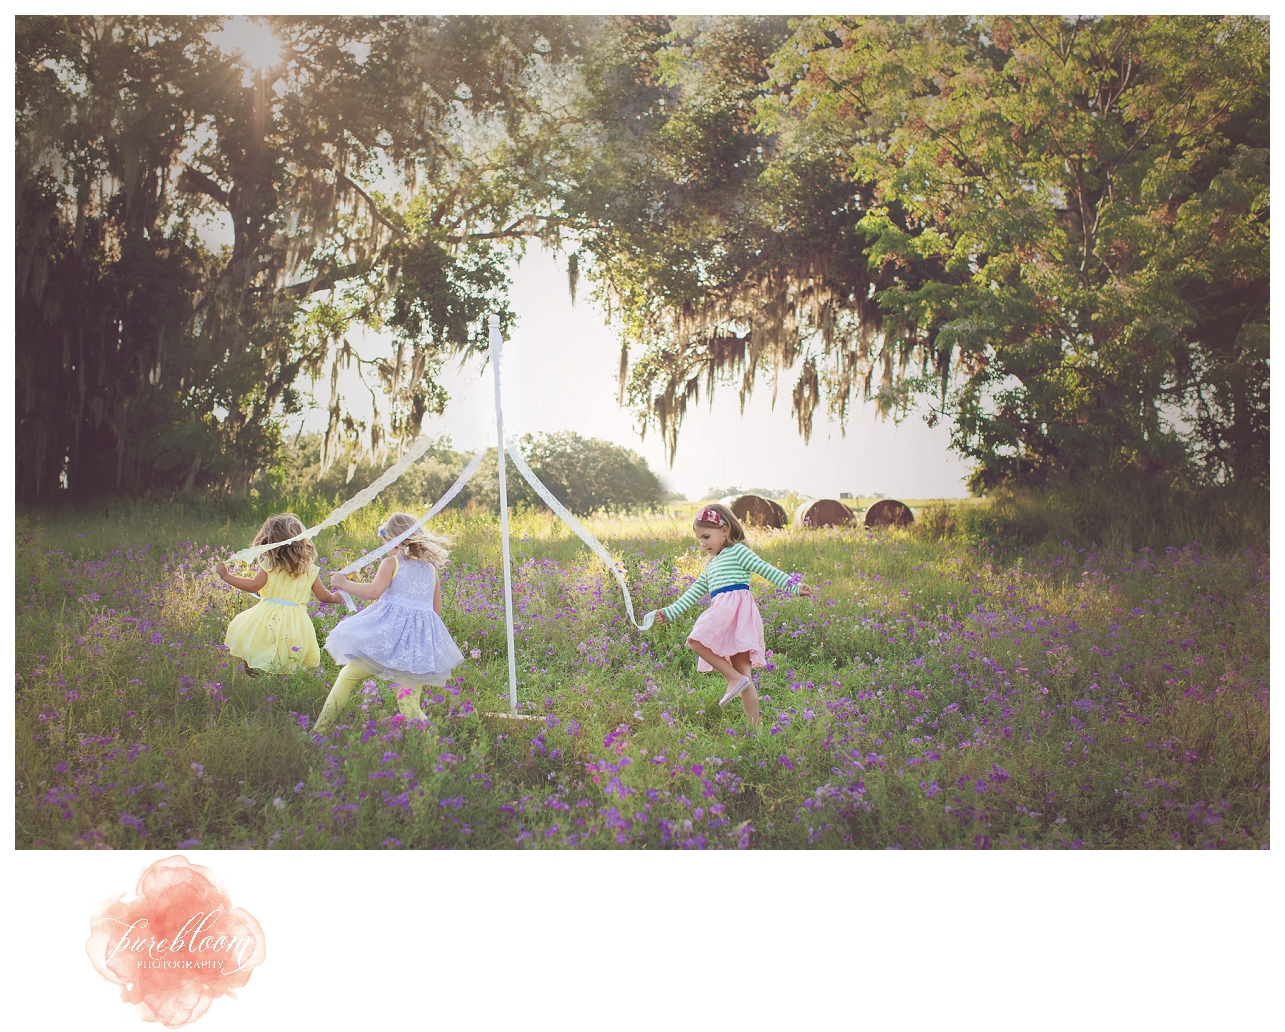 Styled Shoot collaberation with Birdie Baby Boutique|Pure Bloom Photography|Maypole shoot